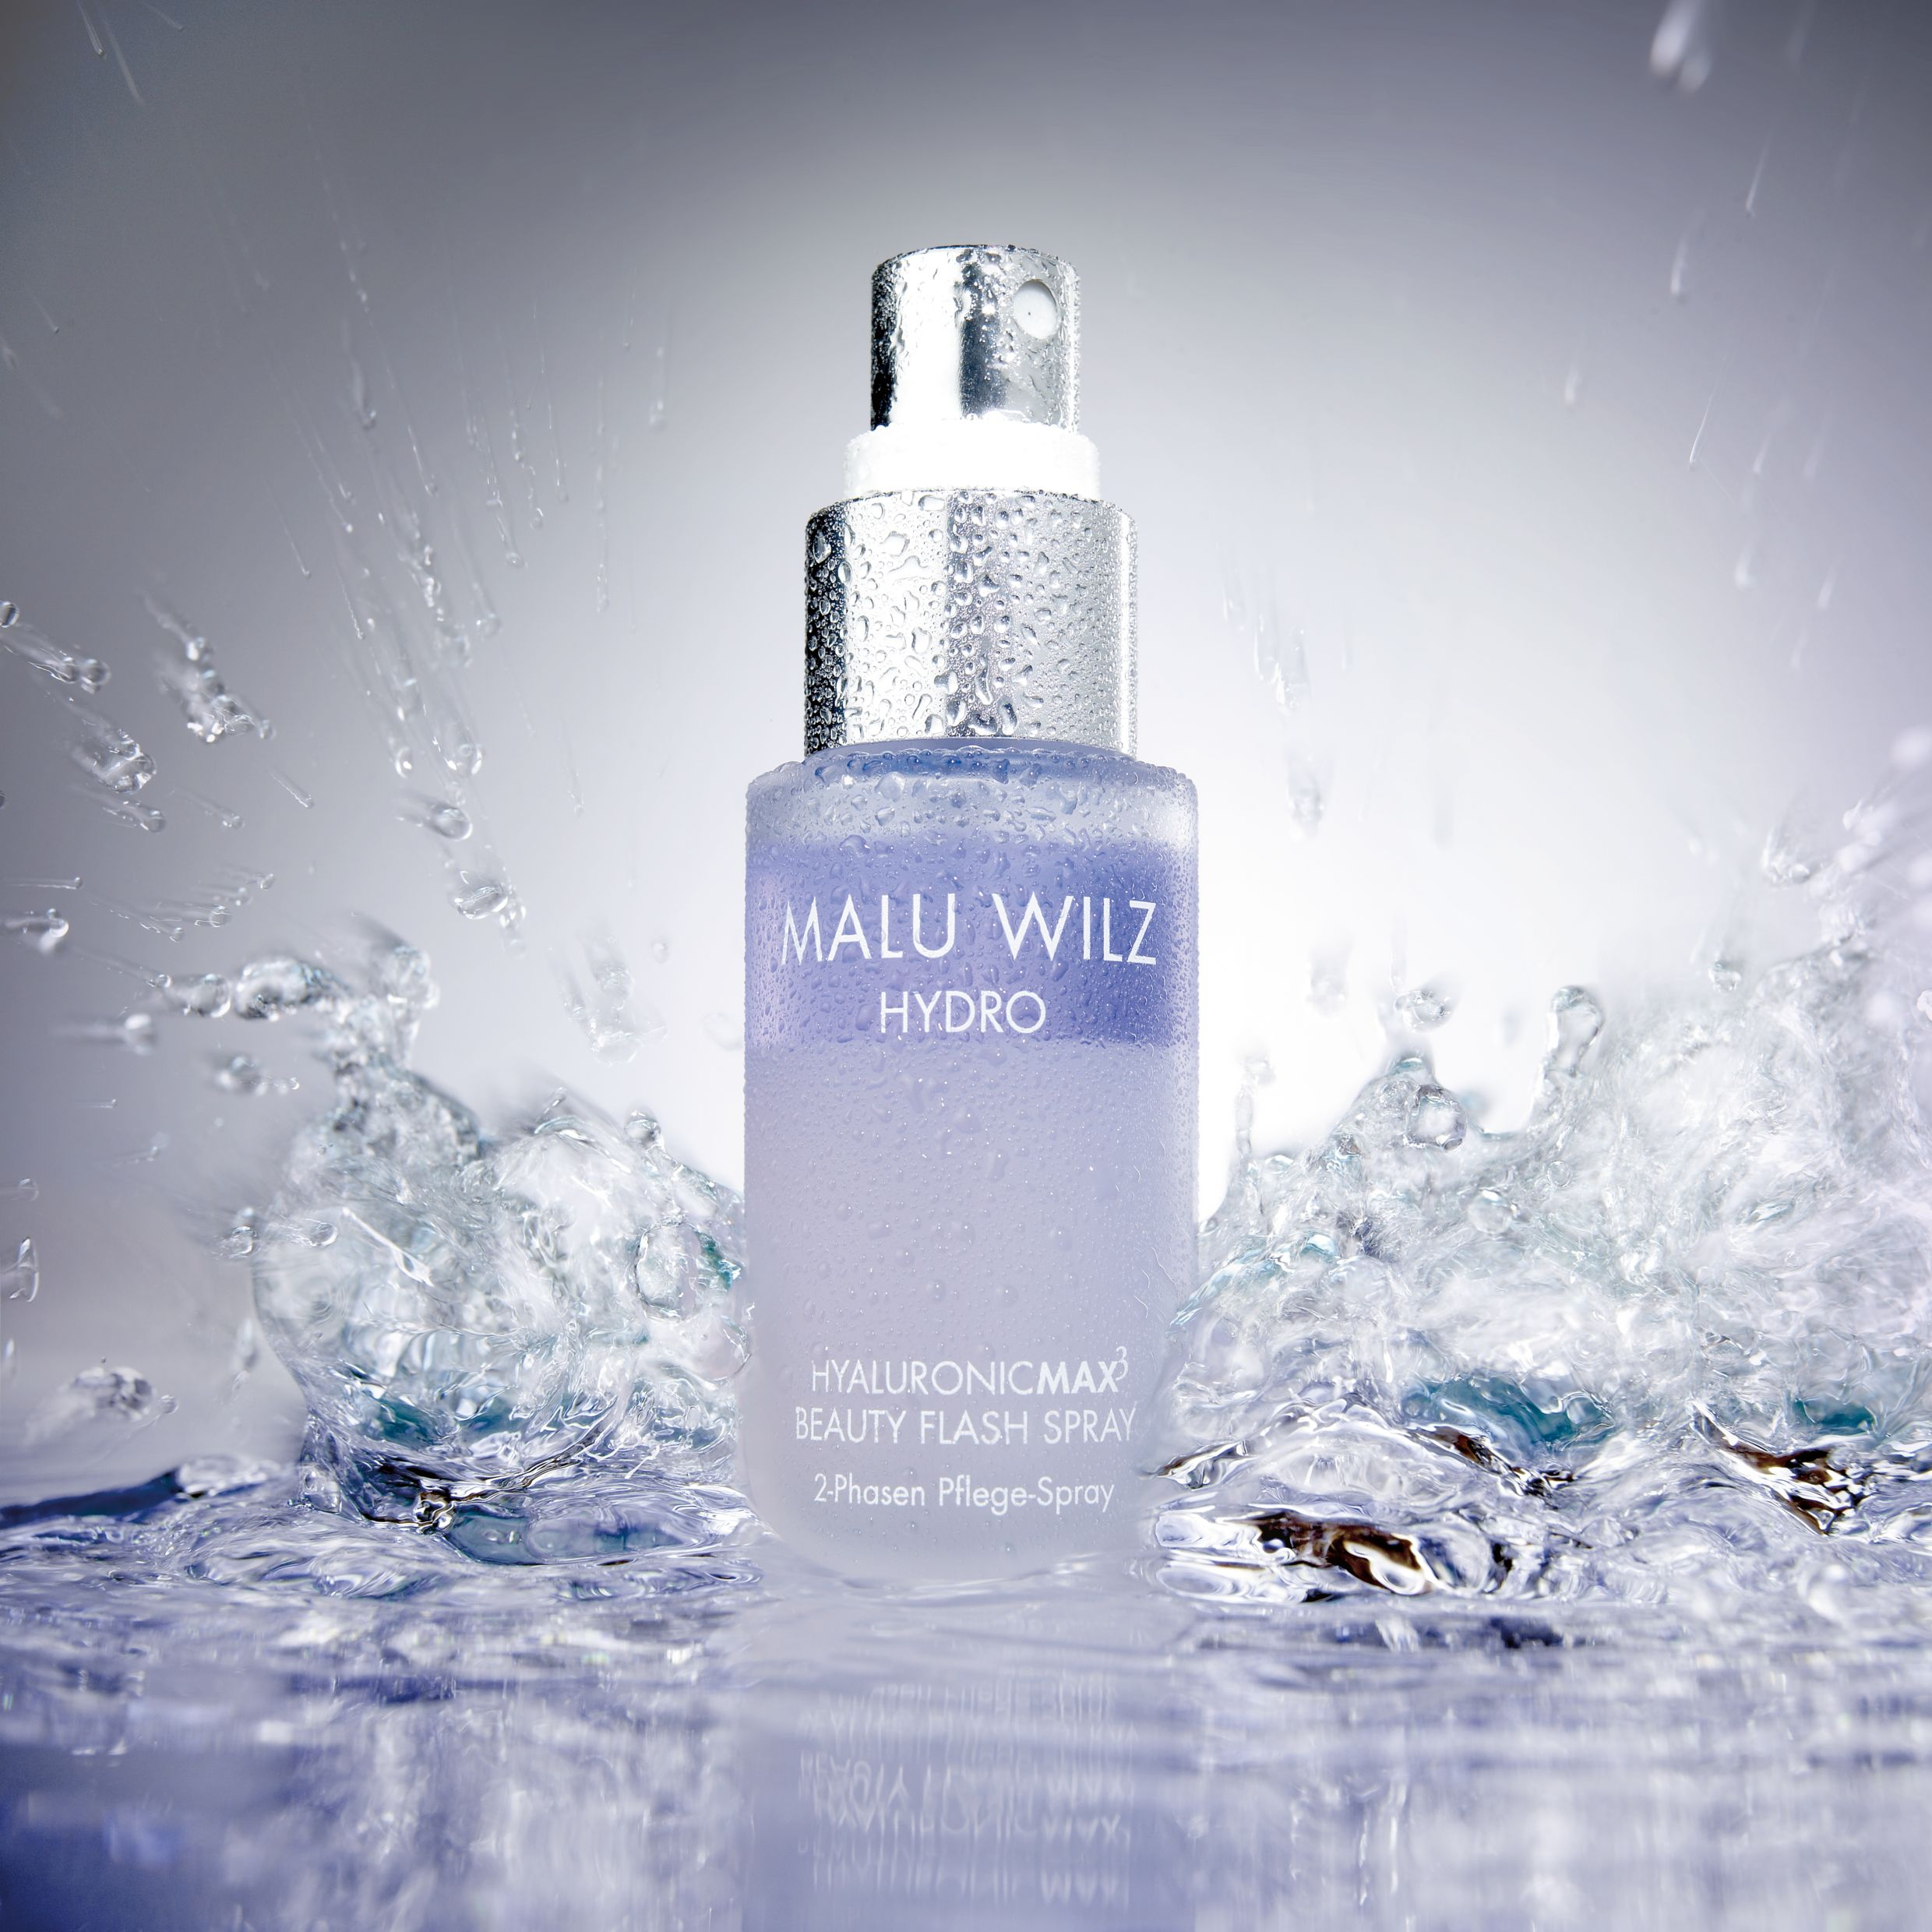 medium-7029-hyaluronic-max3-beauty-flash-spray-malu-wilz.eps_